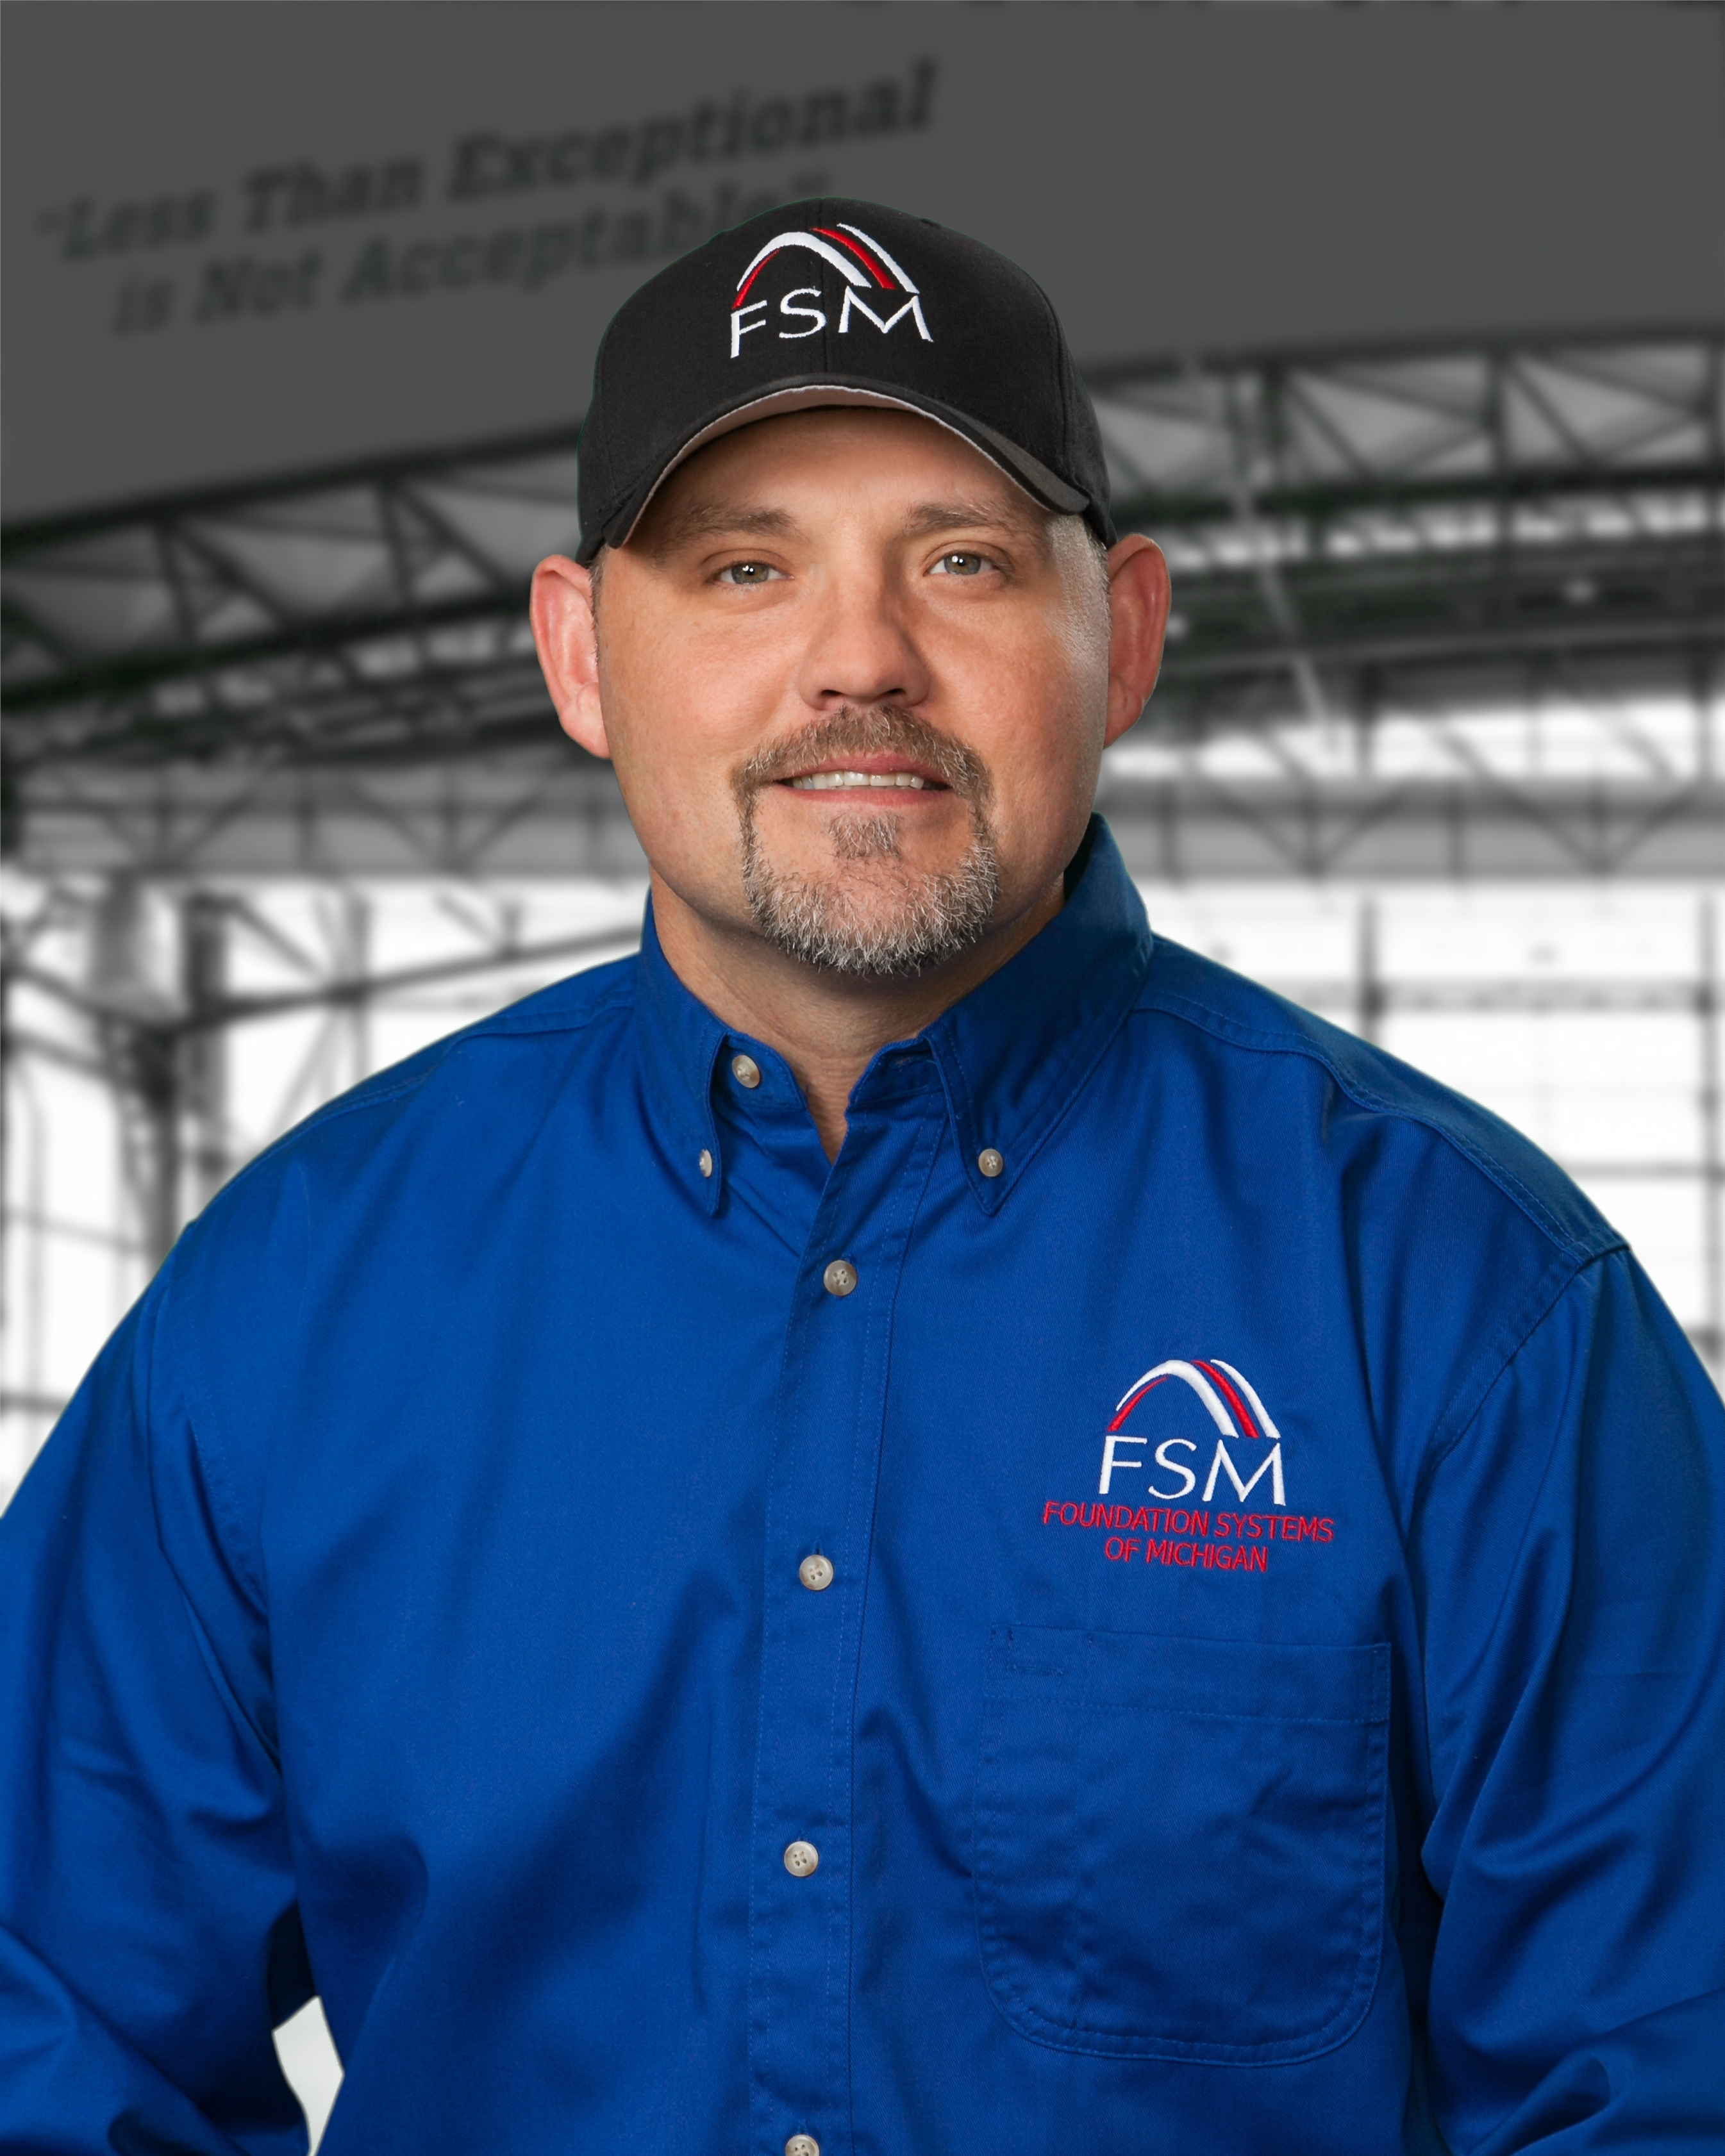 FSM Josh Stith Assistant Inspections Manager